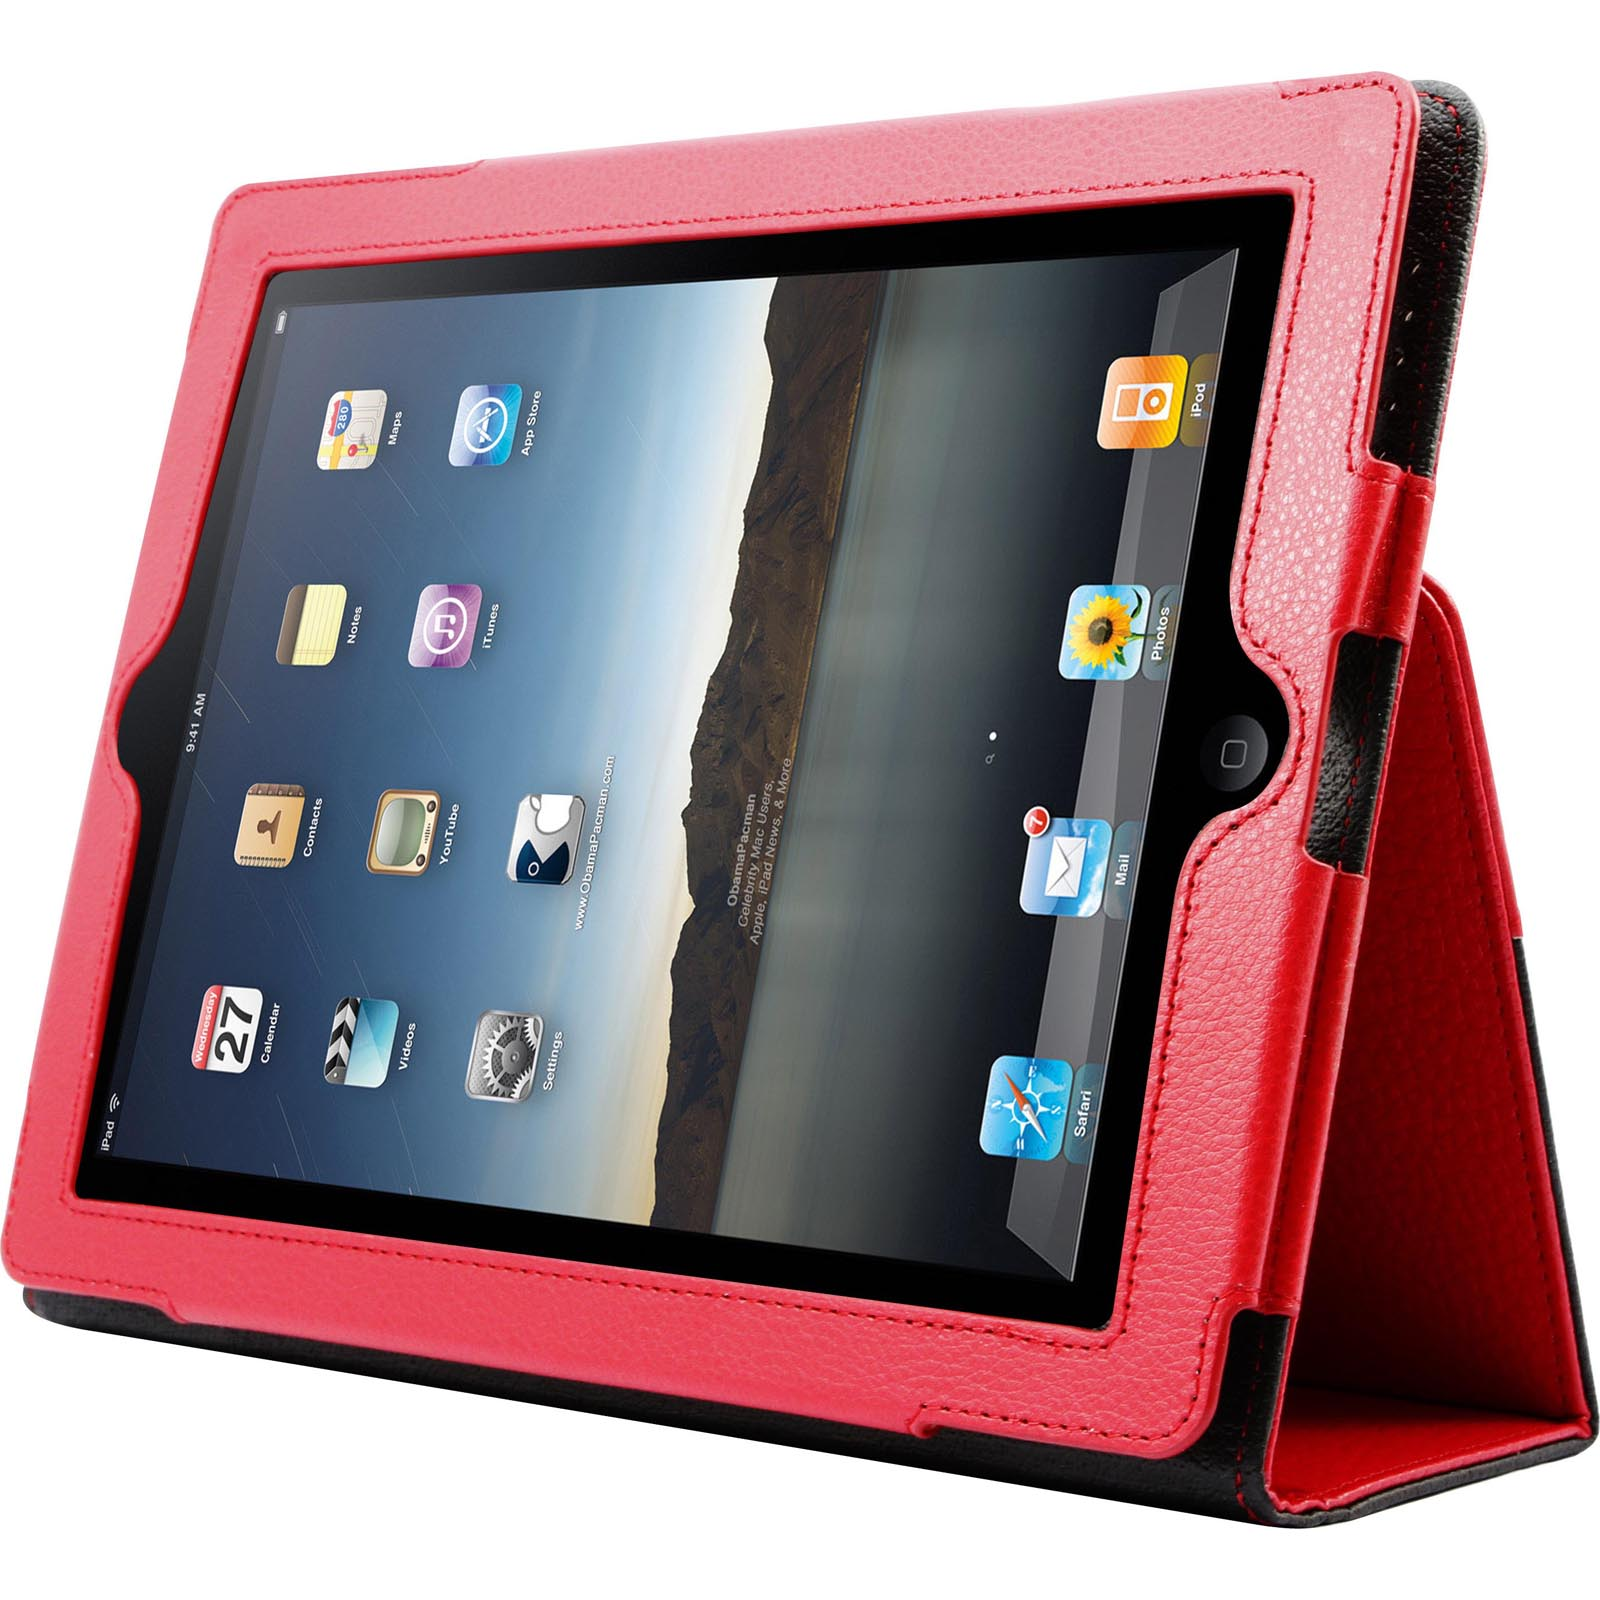 WOW Leather Case for iPad - Red